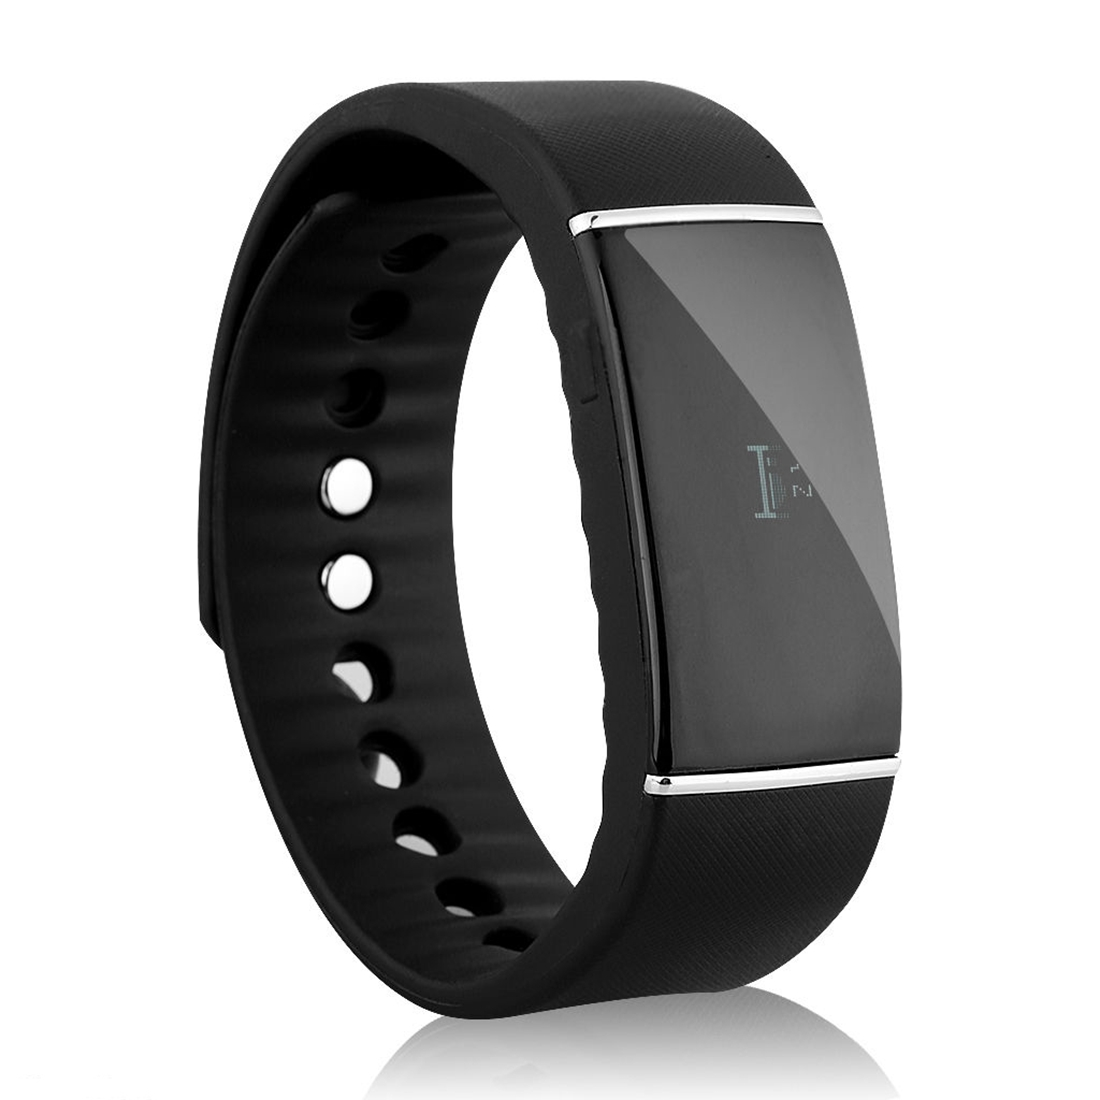 Bluetooth 4.0 Health Wristband Sport Fitness Tracker Sleep Monitor Smart Watch Black